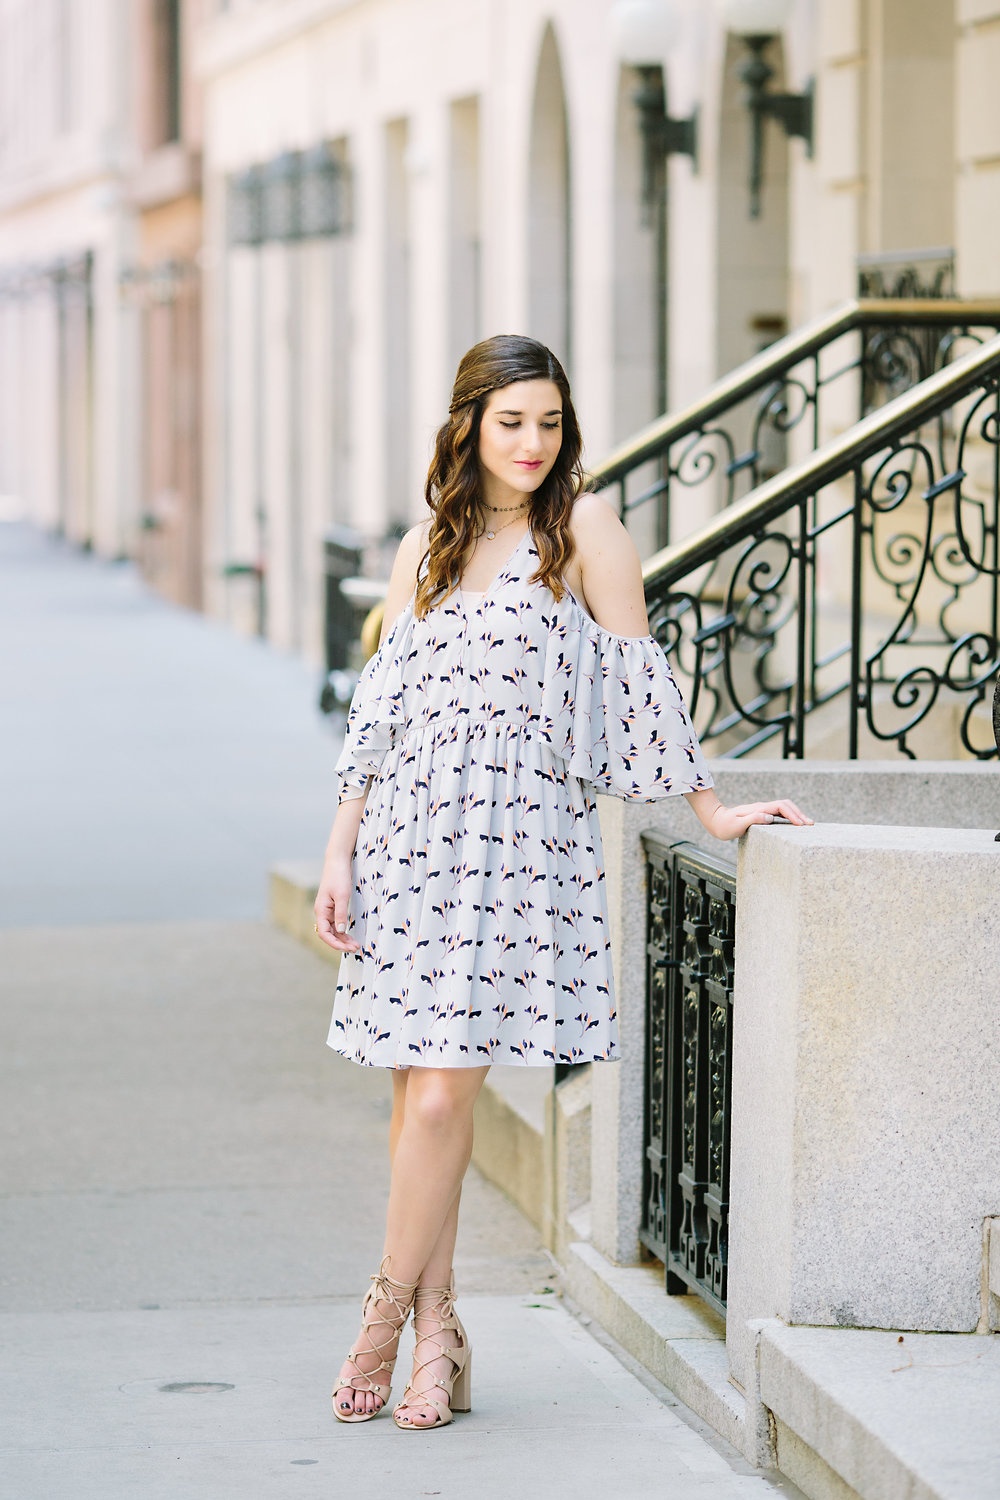 Cold Shoulder Robbie Dress :: Rebecca Minkoff Louboutins & Love Fashion Blog Esther Santer NYC Street Style Blogger Outfit OOTD Bloomingdale's Ivanka Trump Lace-Up Heels Shoes Nordstrom Photoshoot Necklaces Shopping Jewelry Model Pretty Girly Feminine.jpg